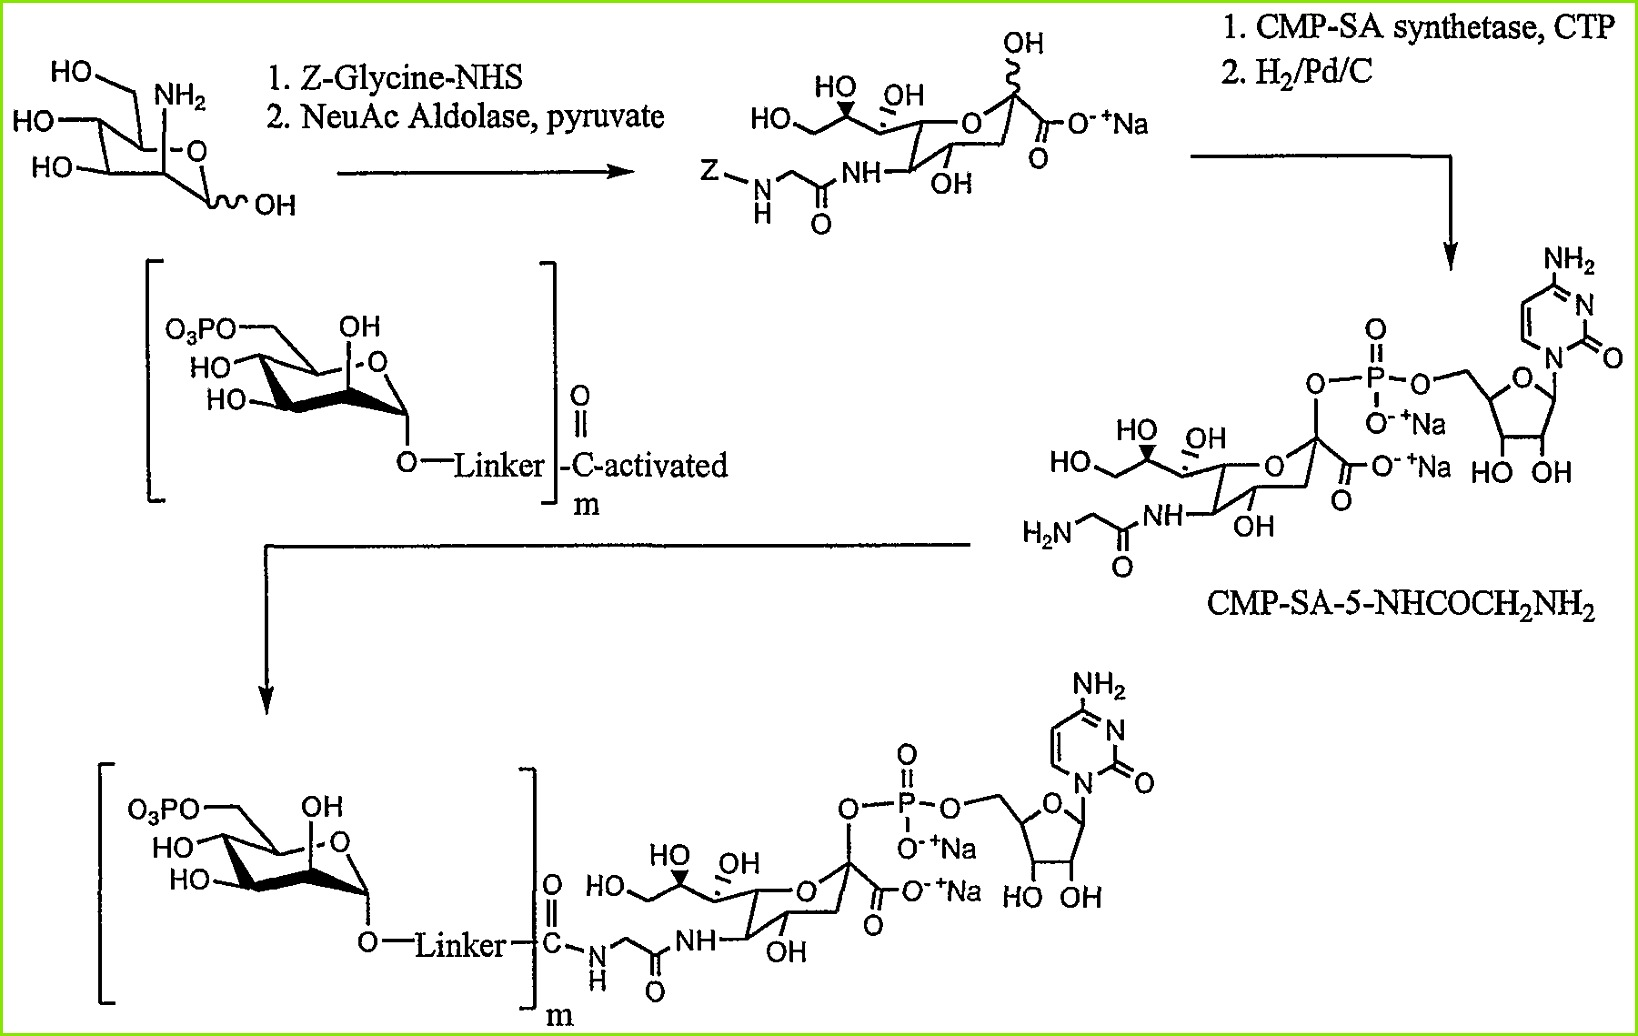 WO A2 Remodeling and glycoconjugation of peptides Google Patents